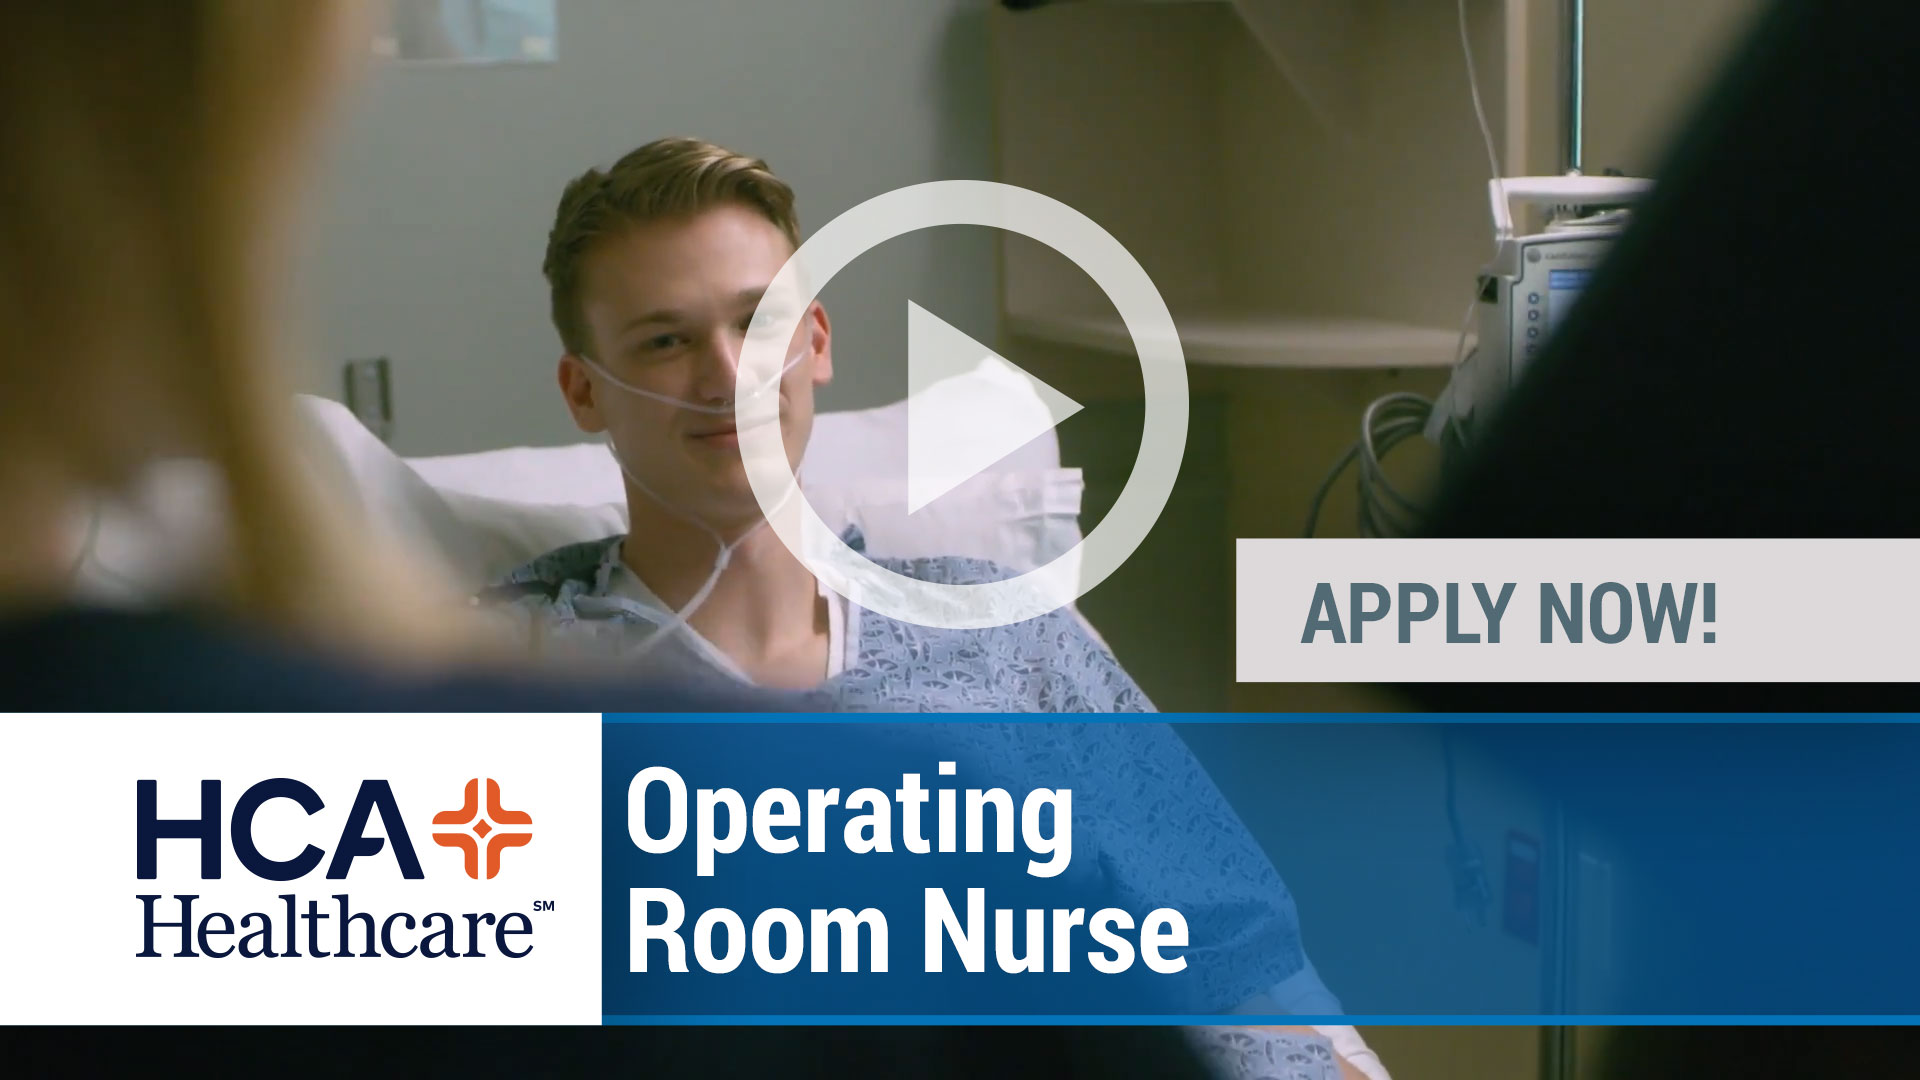 Watch our careers video for available job opening Operating Room Nurse in Chattanooga, Tennessee